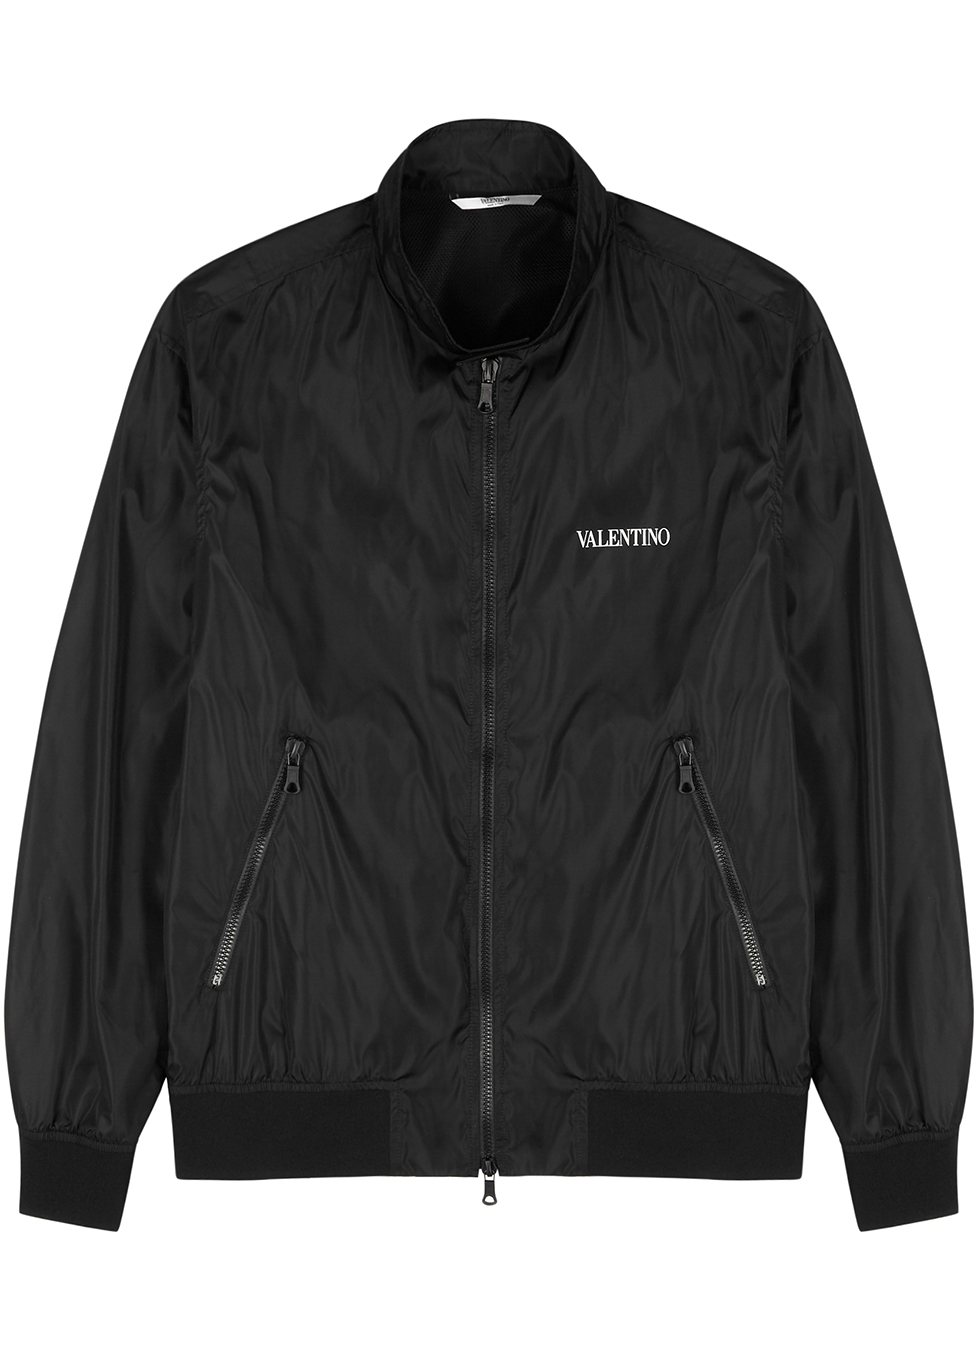 Black shell bomber jacket